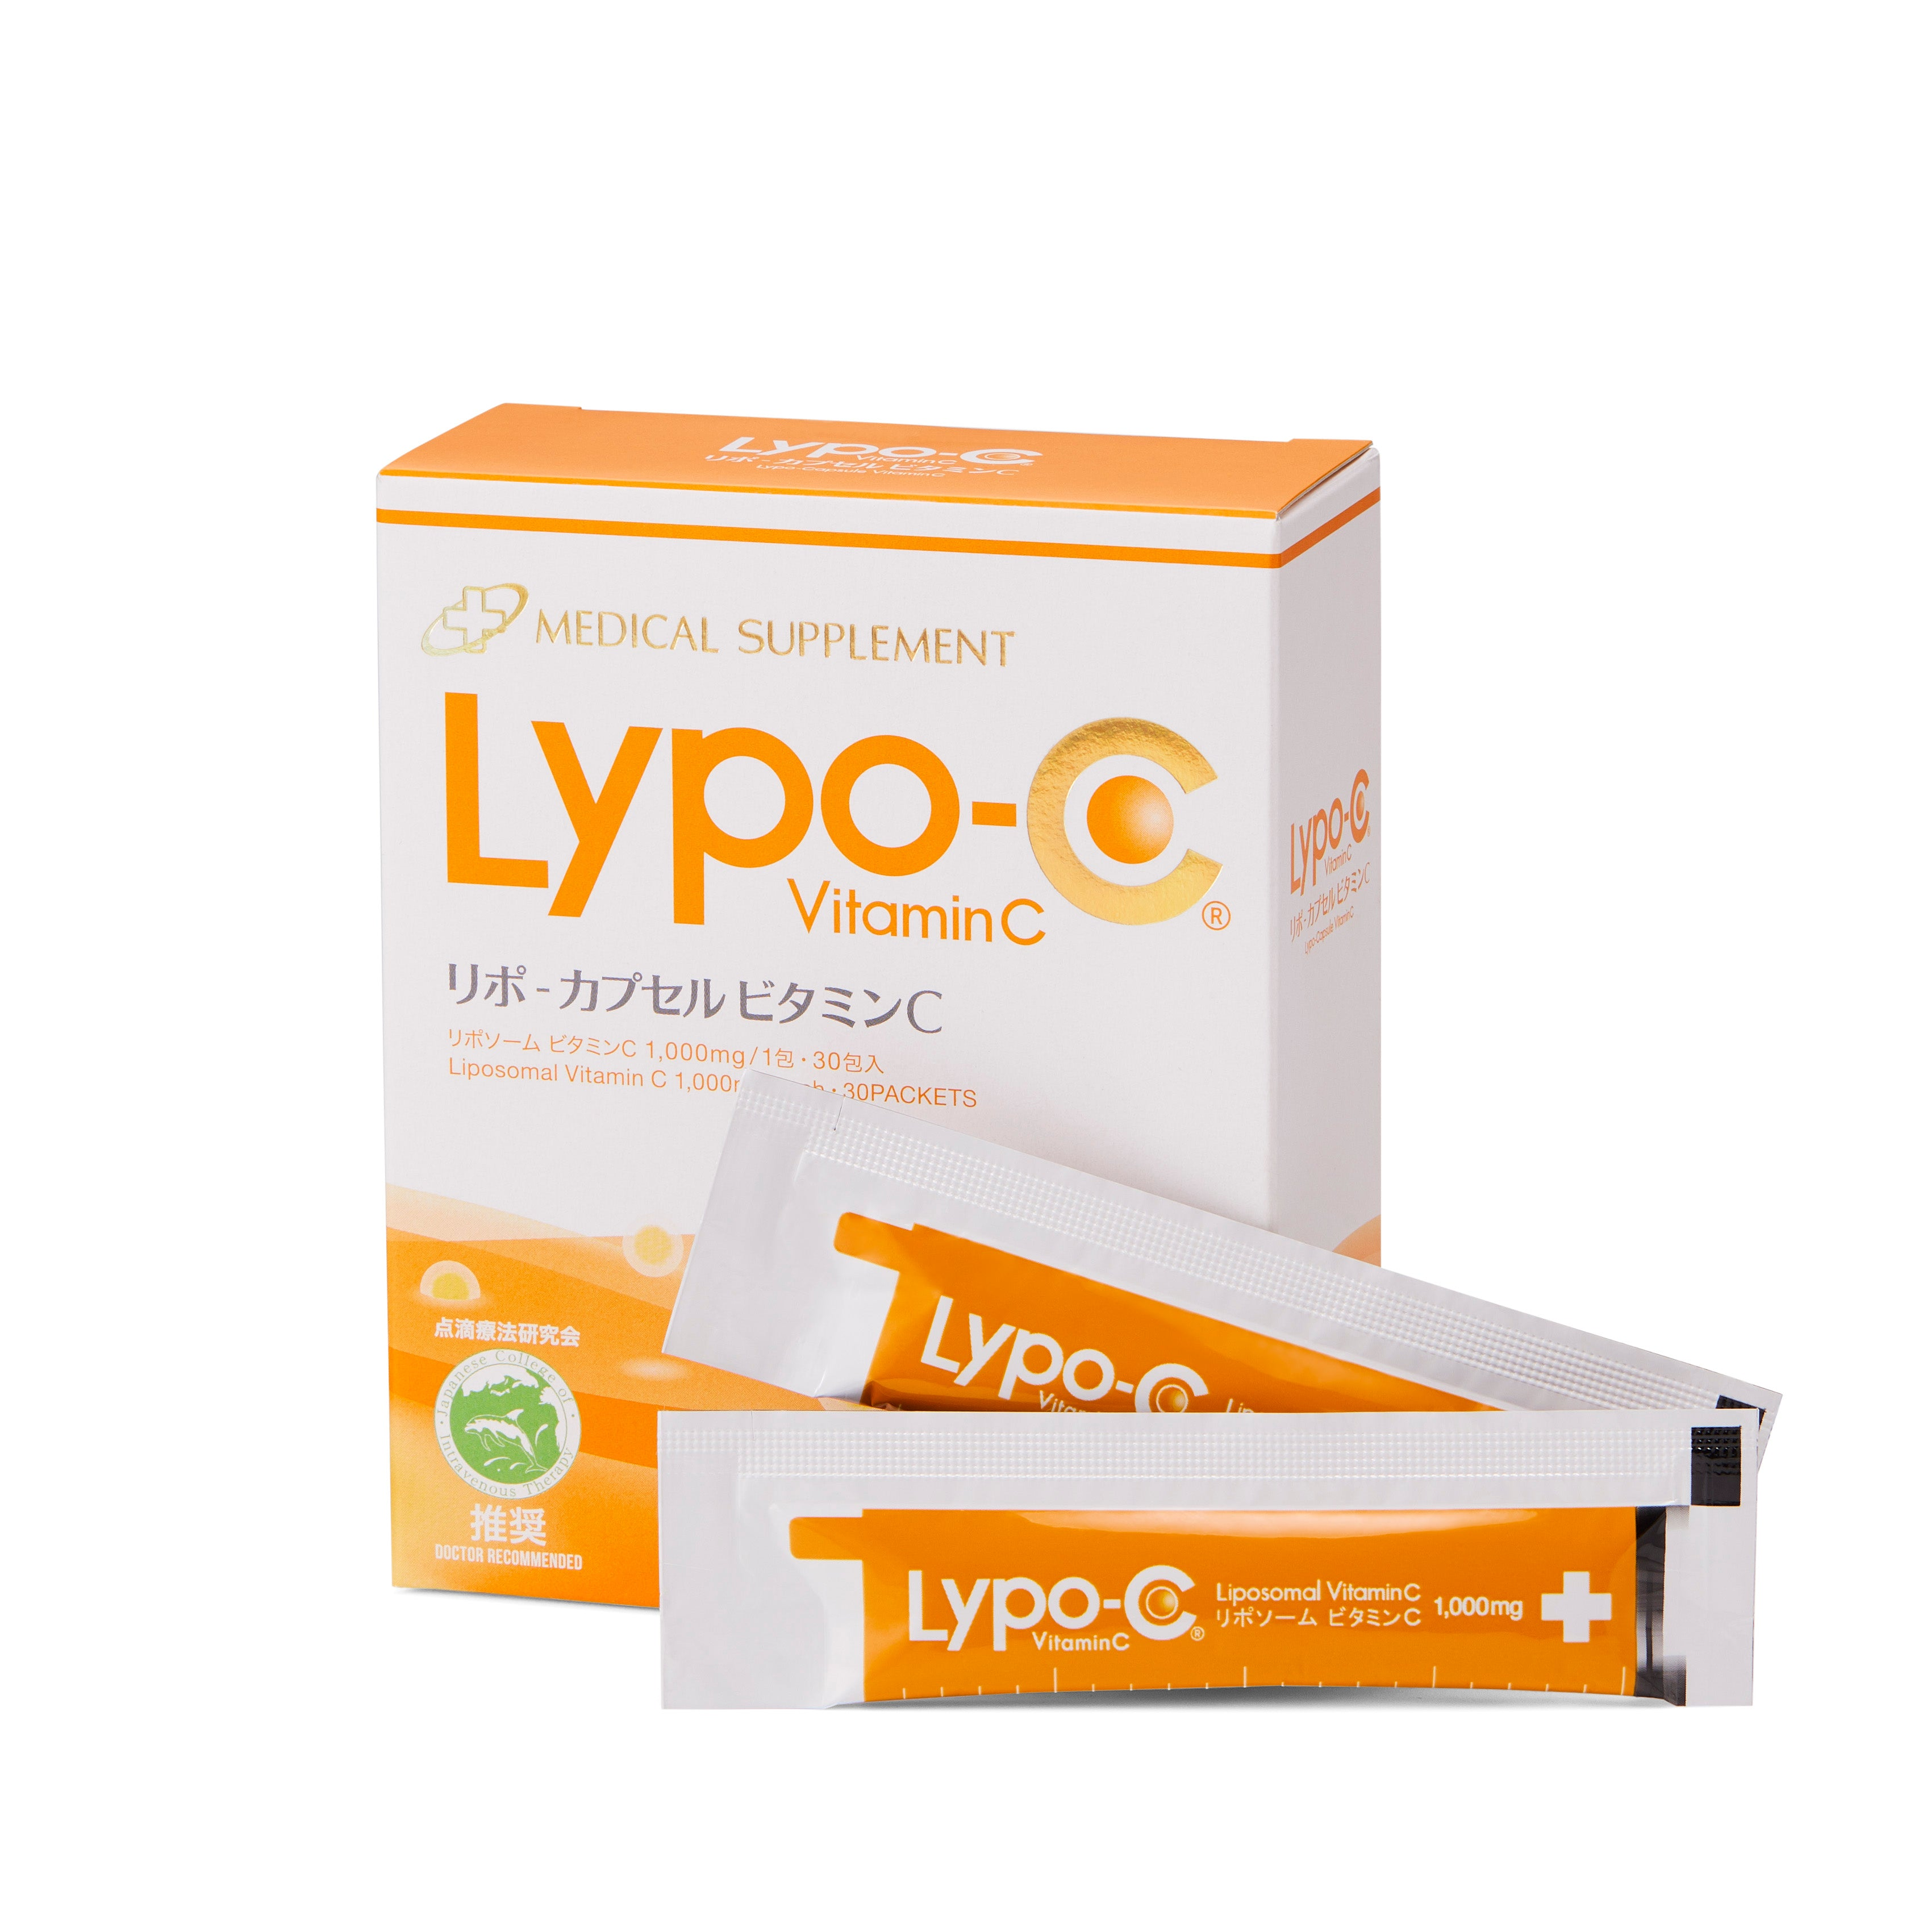 LYPO-C HIGH CONCENTRATION VITAMIN C / 高濃度ビタミンC (30 Packets / 30包入)